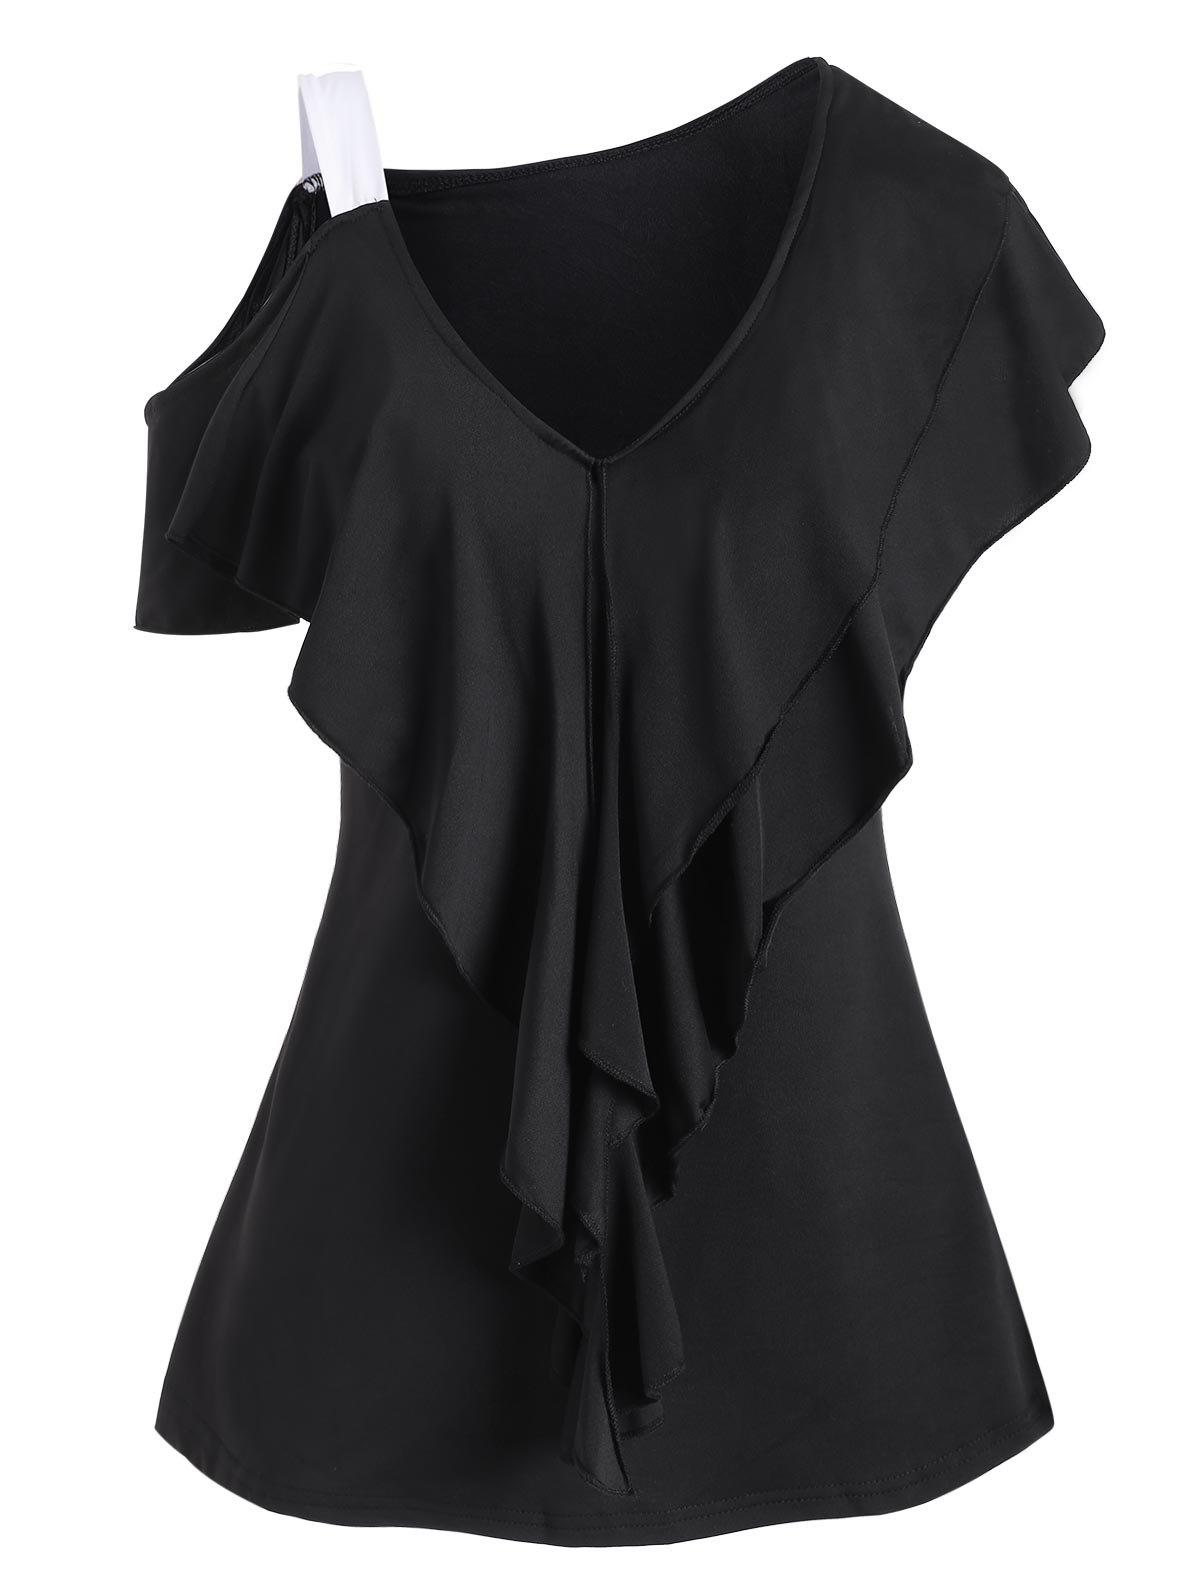 V Neck Cold Shoulder Layered Ruffles Top - BLACK XL